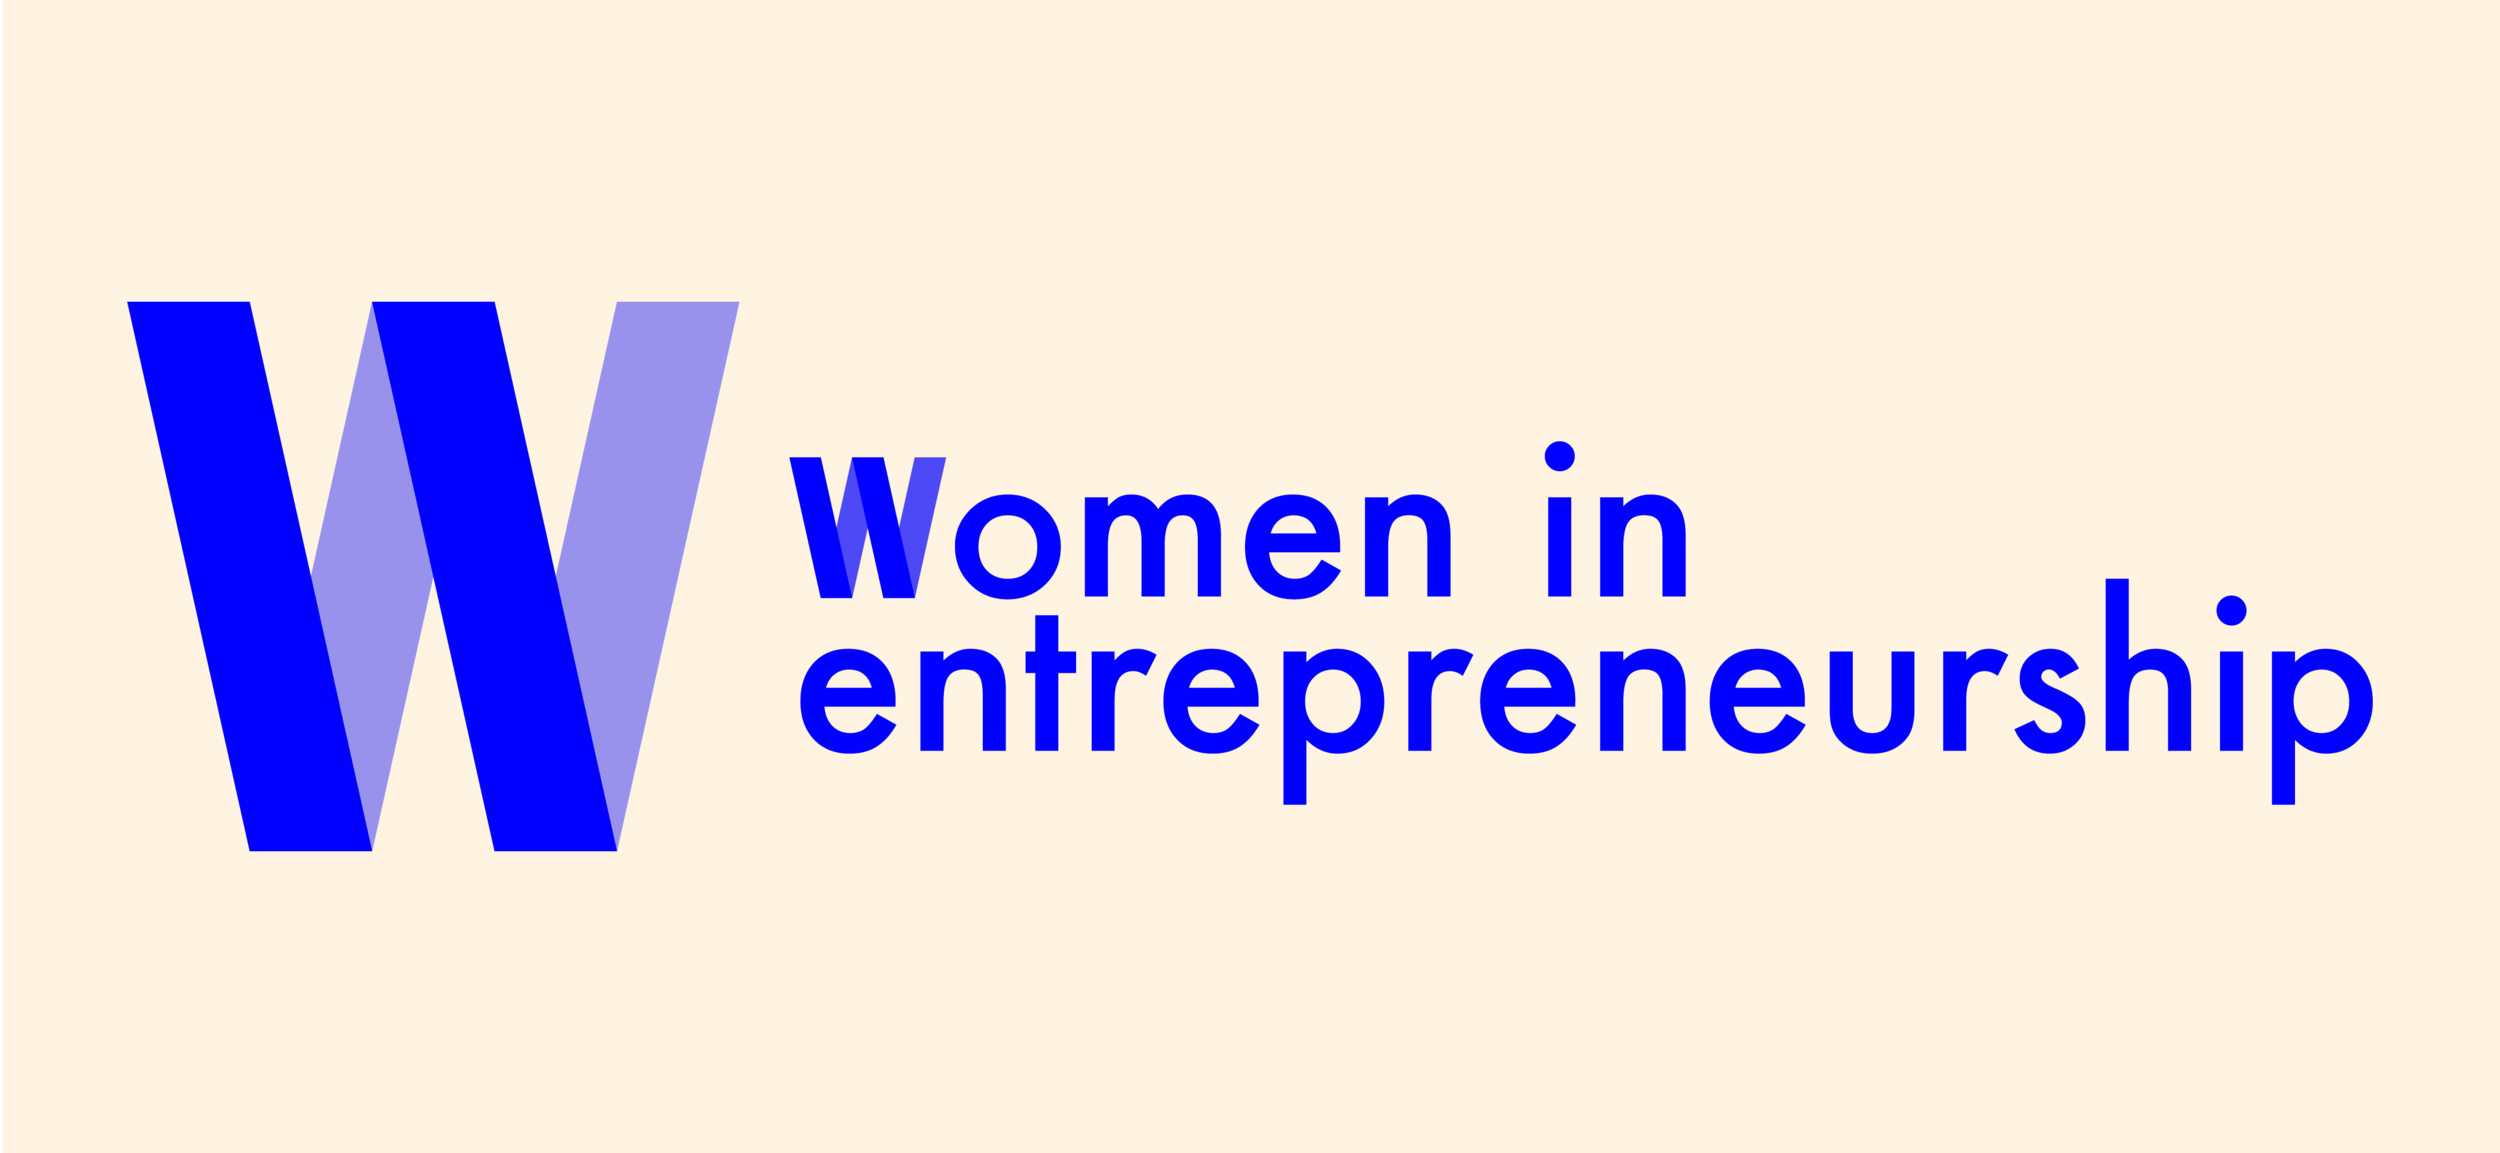 WOMEN IN ENTREPRENEURSHIp - Connecting a community of women interested in entrepreneurship to the startup community.